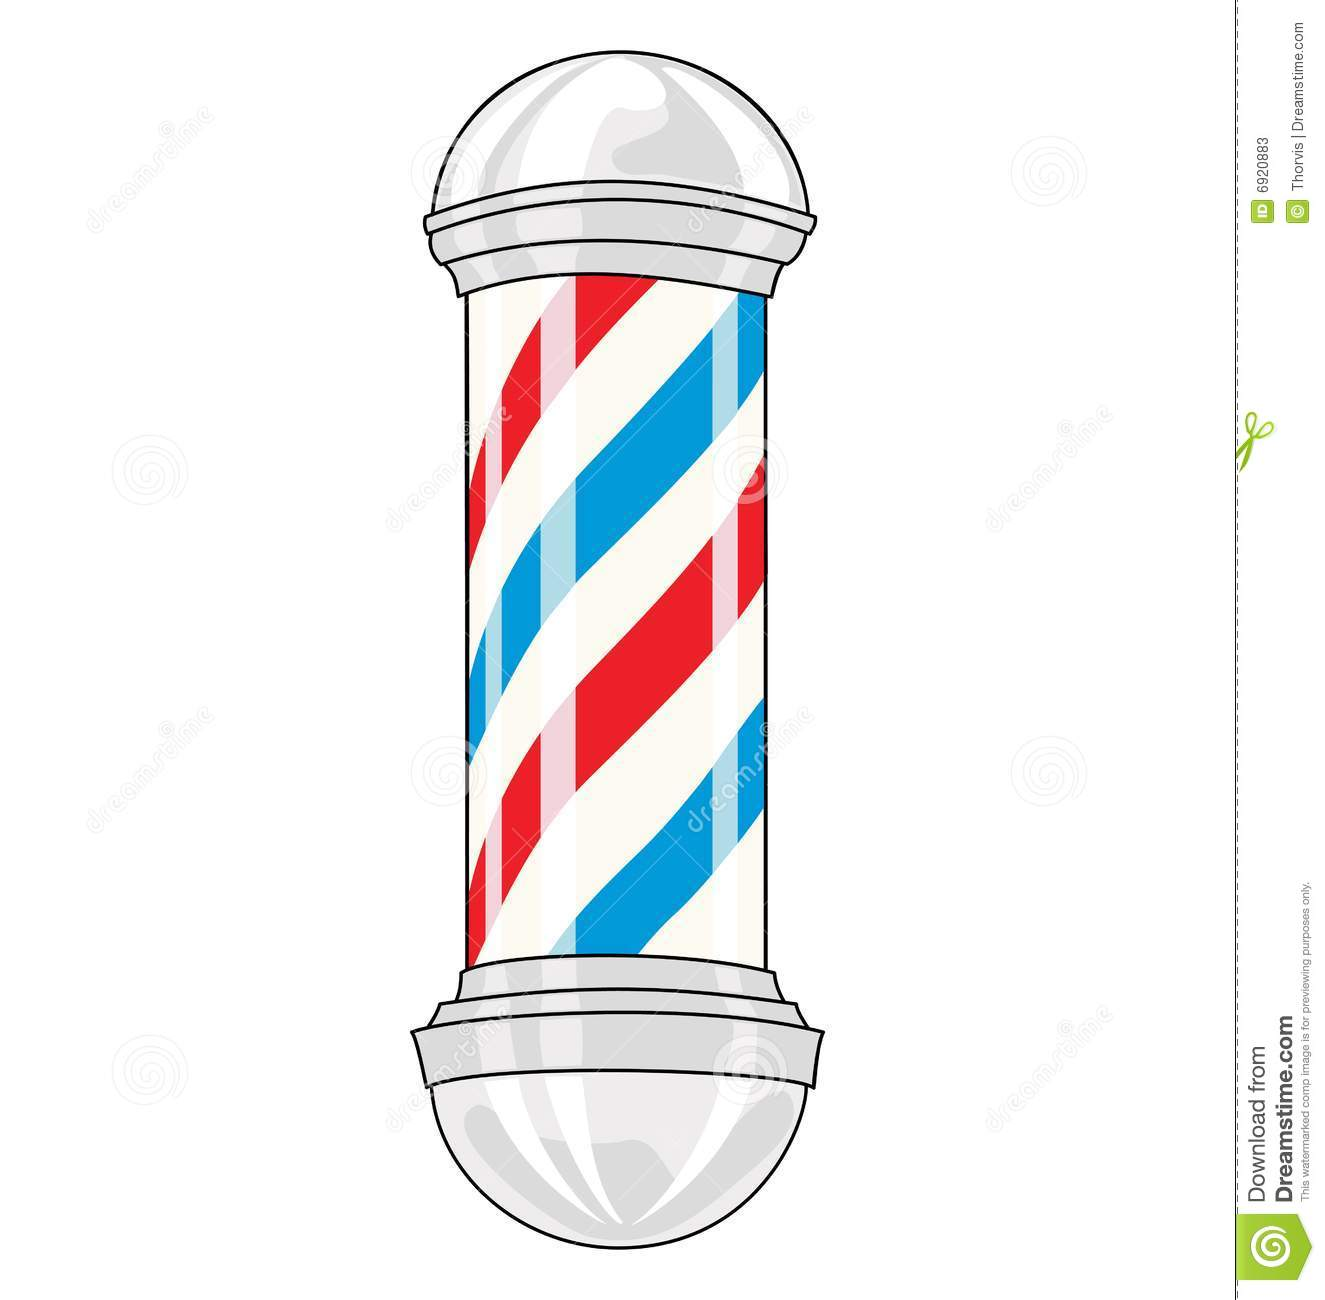 Barber Pole Stock Photos.